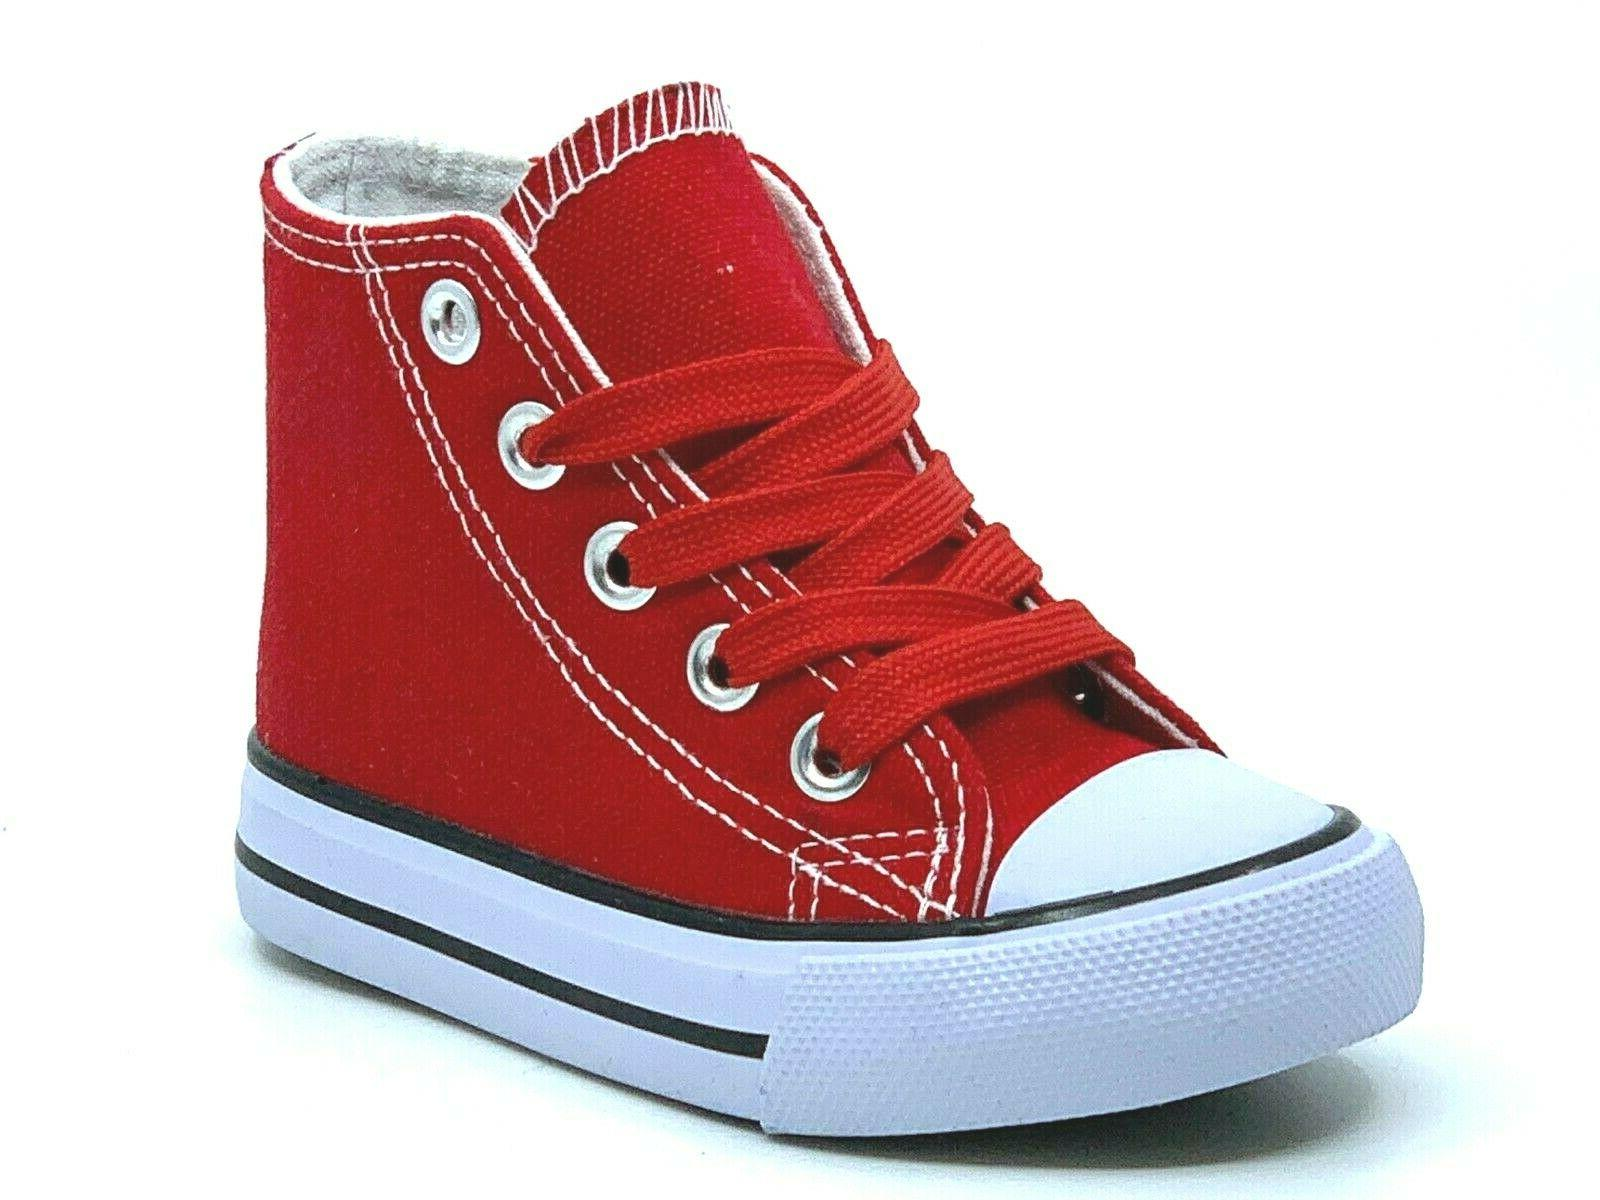 New Lace Up Top Girls Boys Shoes Sneakers